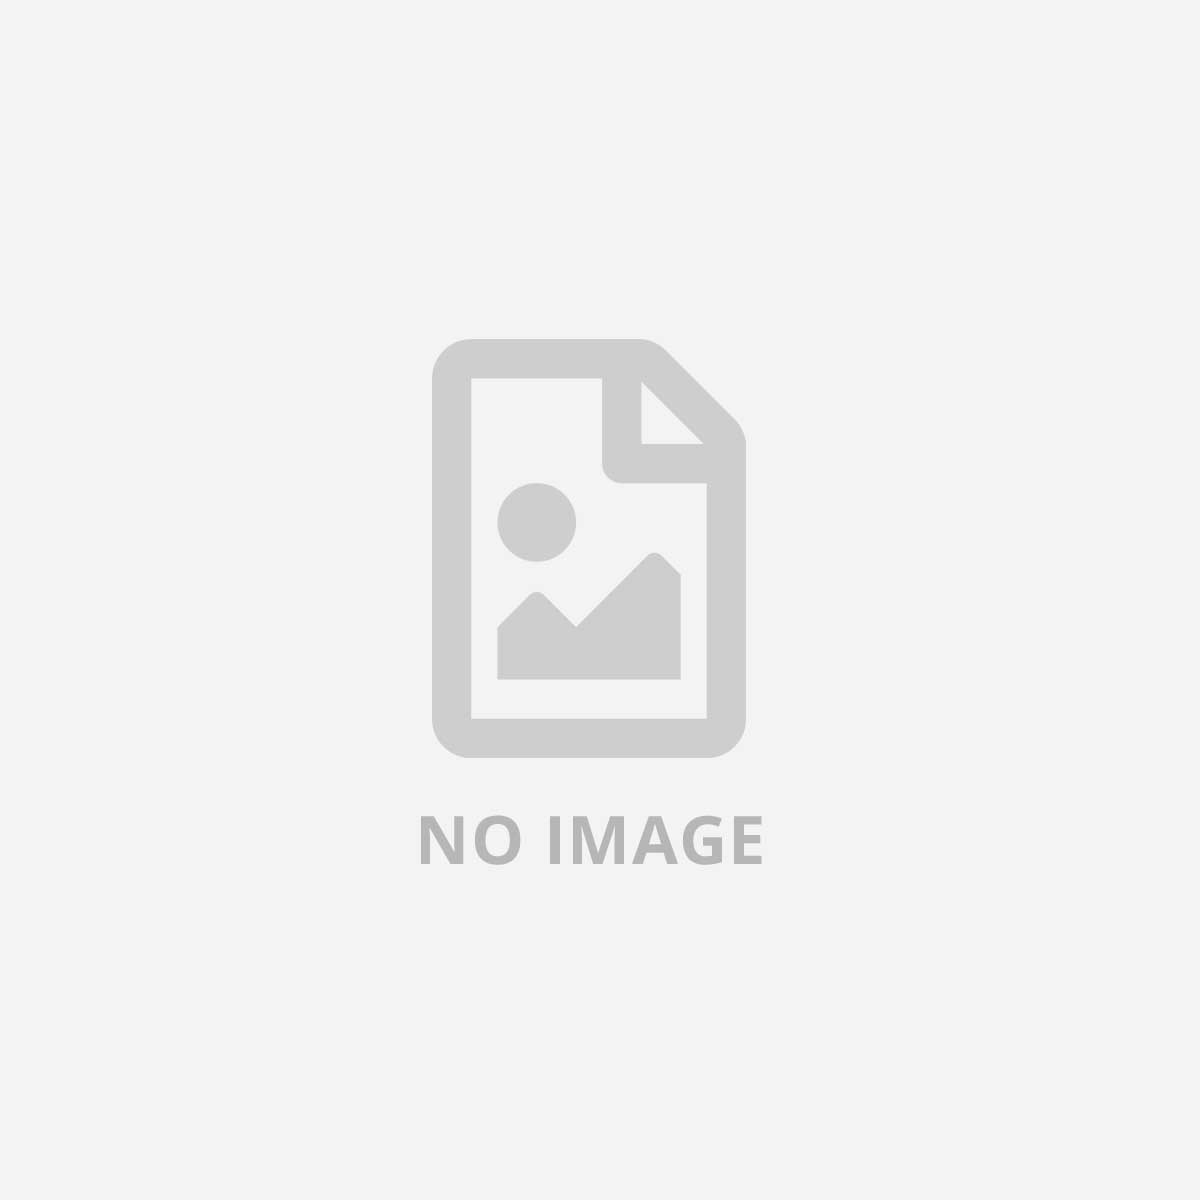 DELL IT/BTP/PE T440/CHASSIS 16 X 2 5  HO